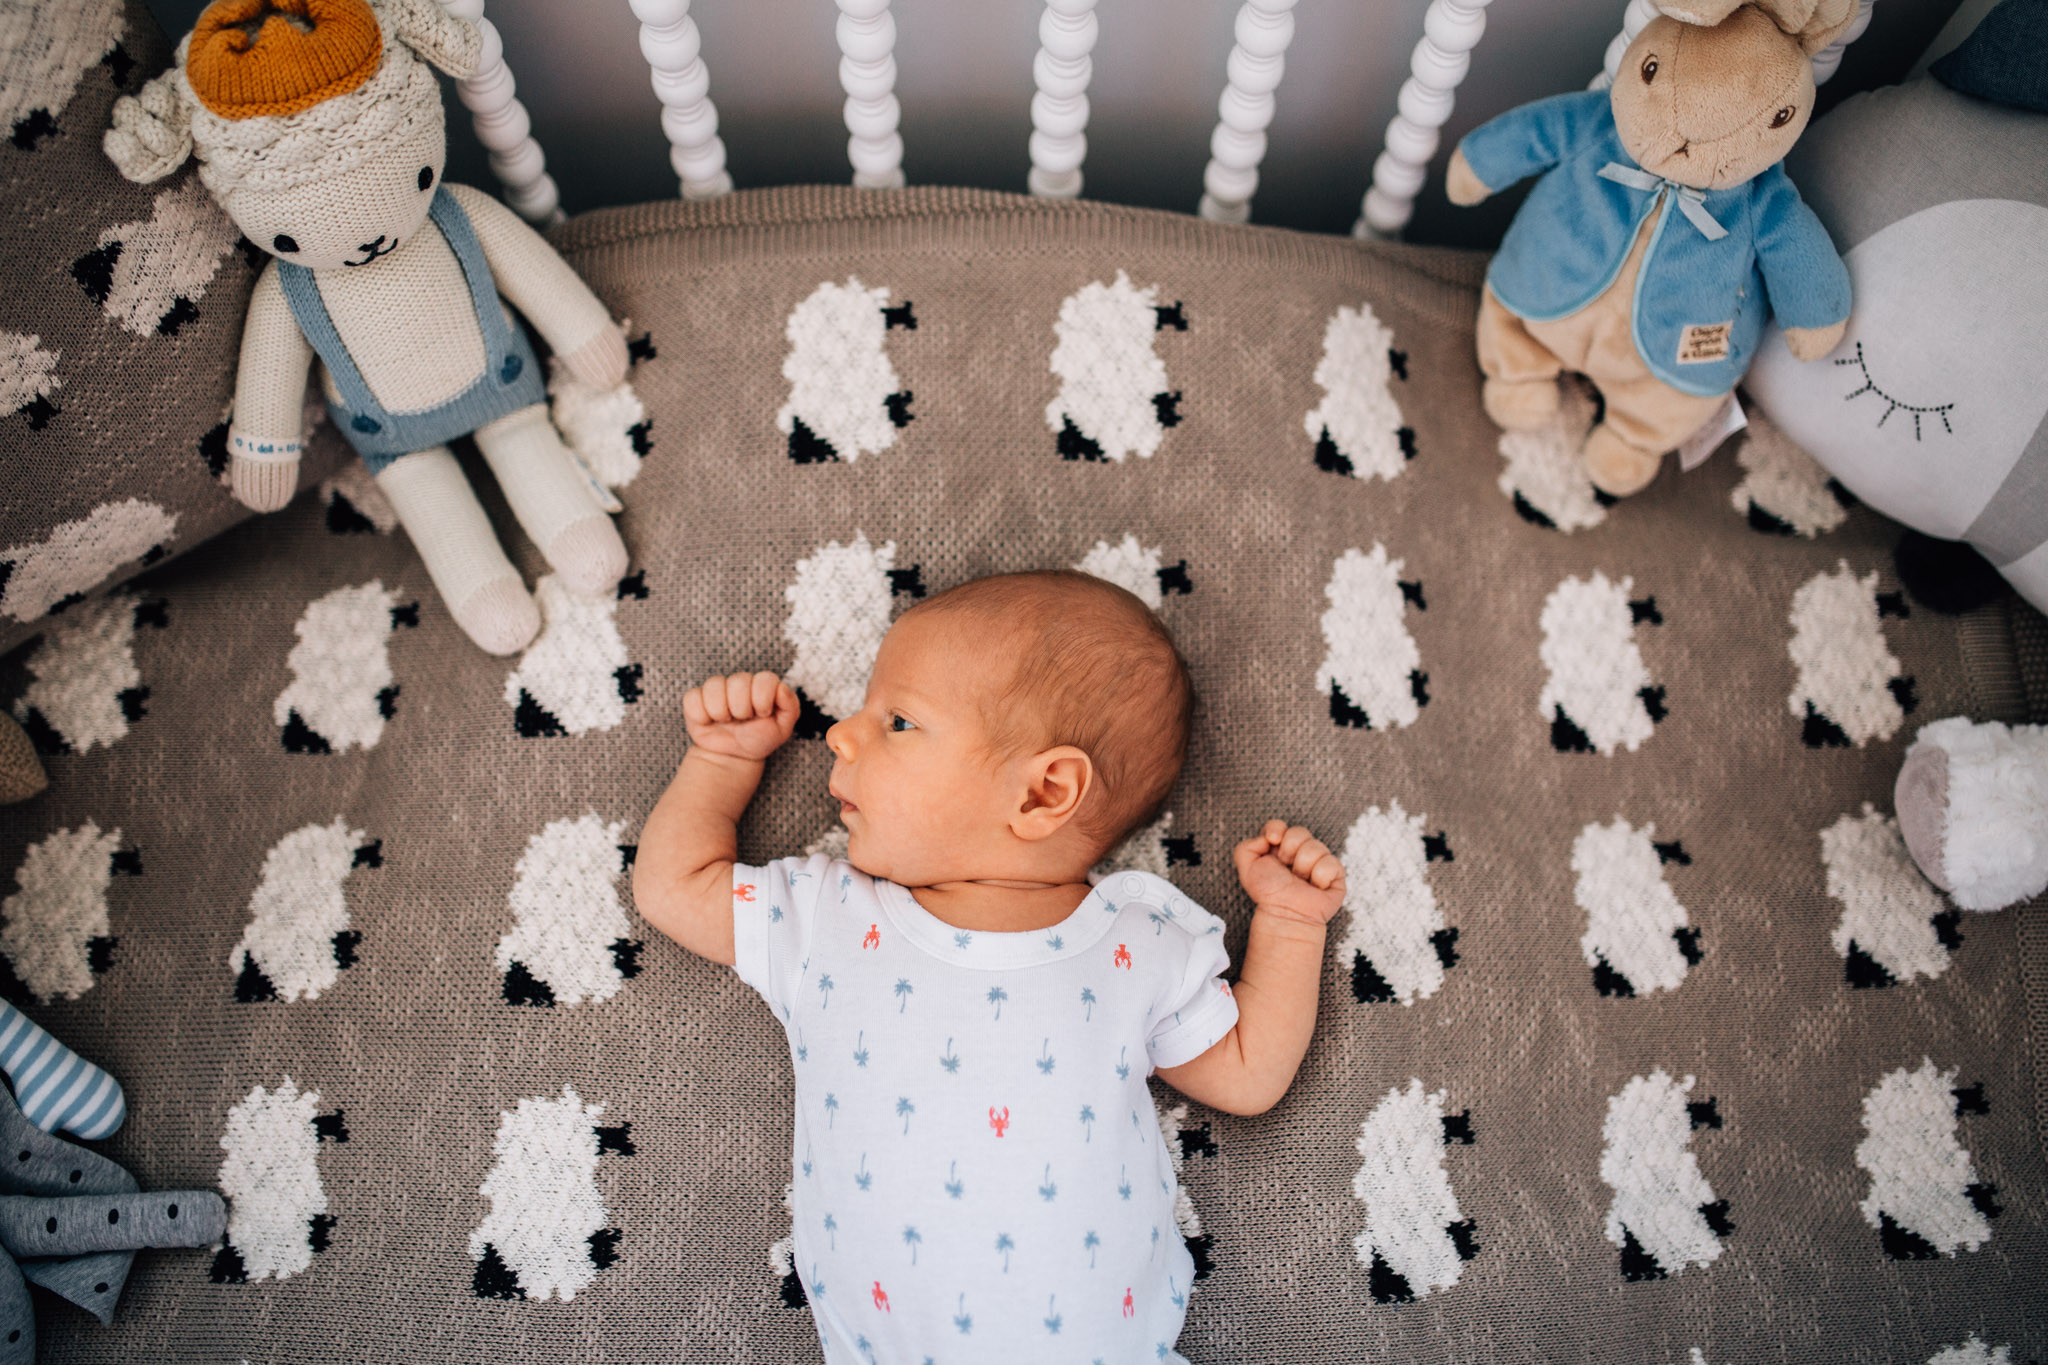 baby-relaxing-in-cot-with-sheep-bedding-III (1 of 1).jpg